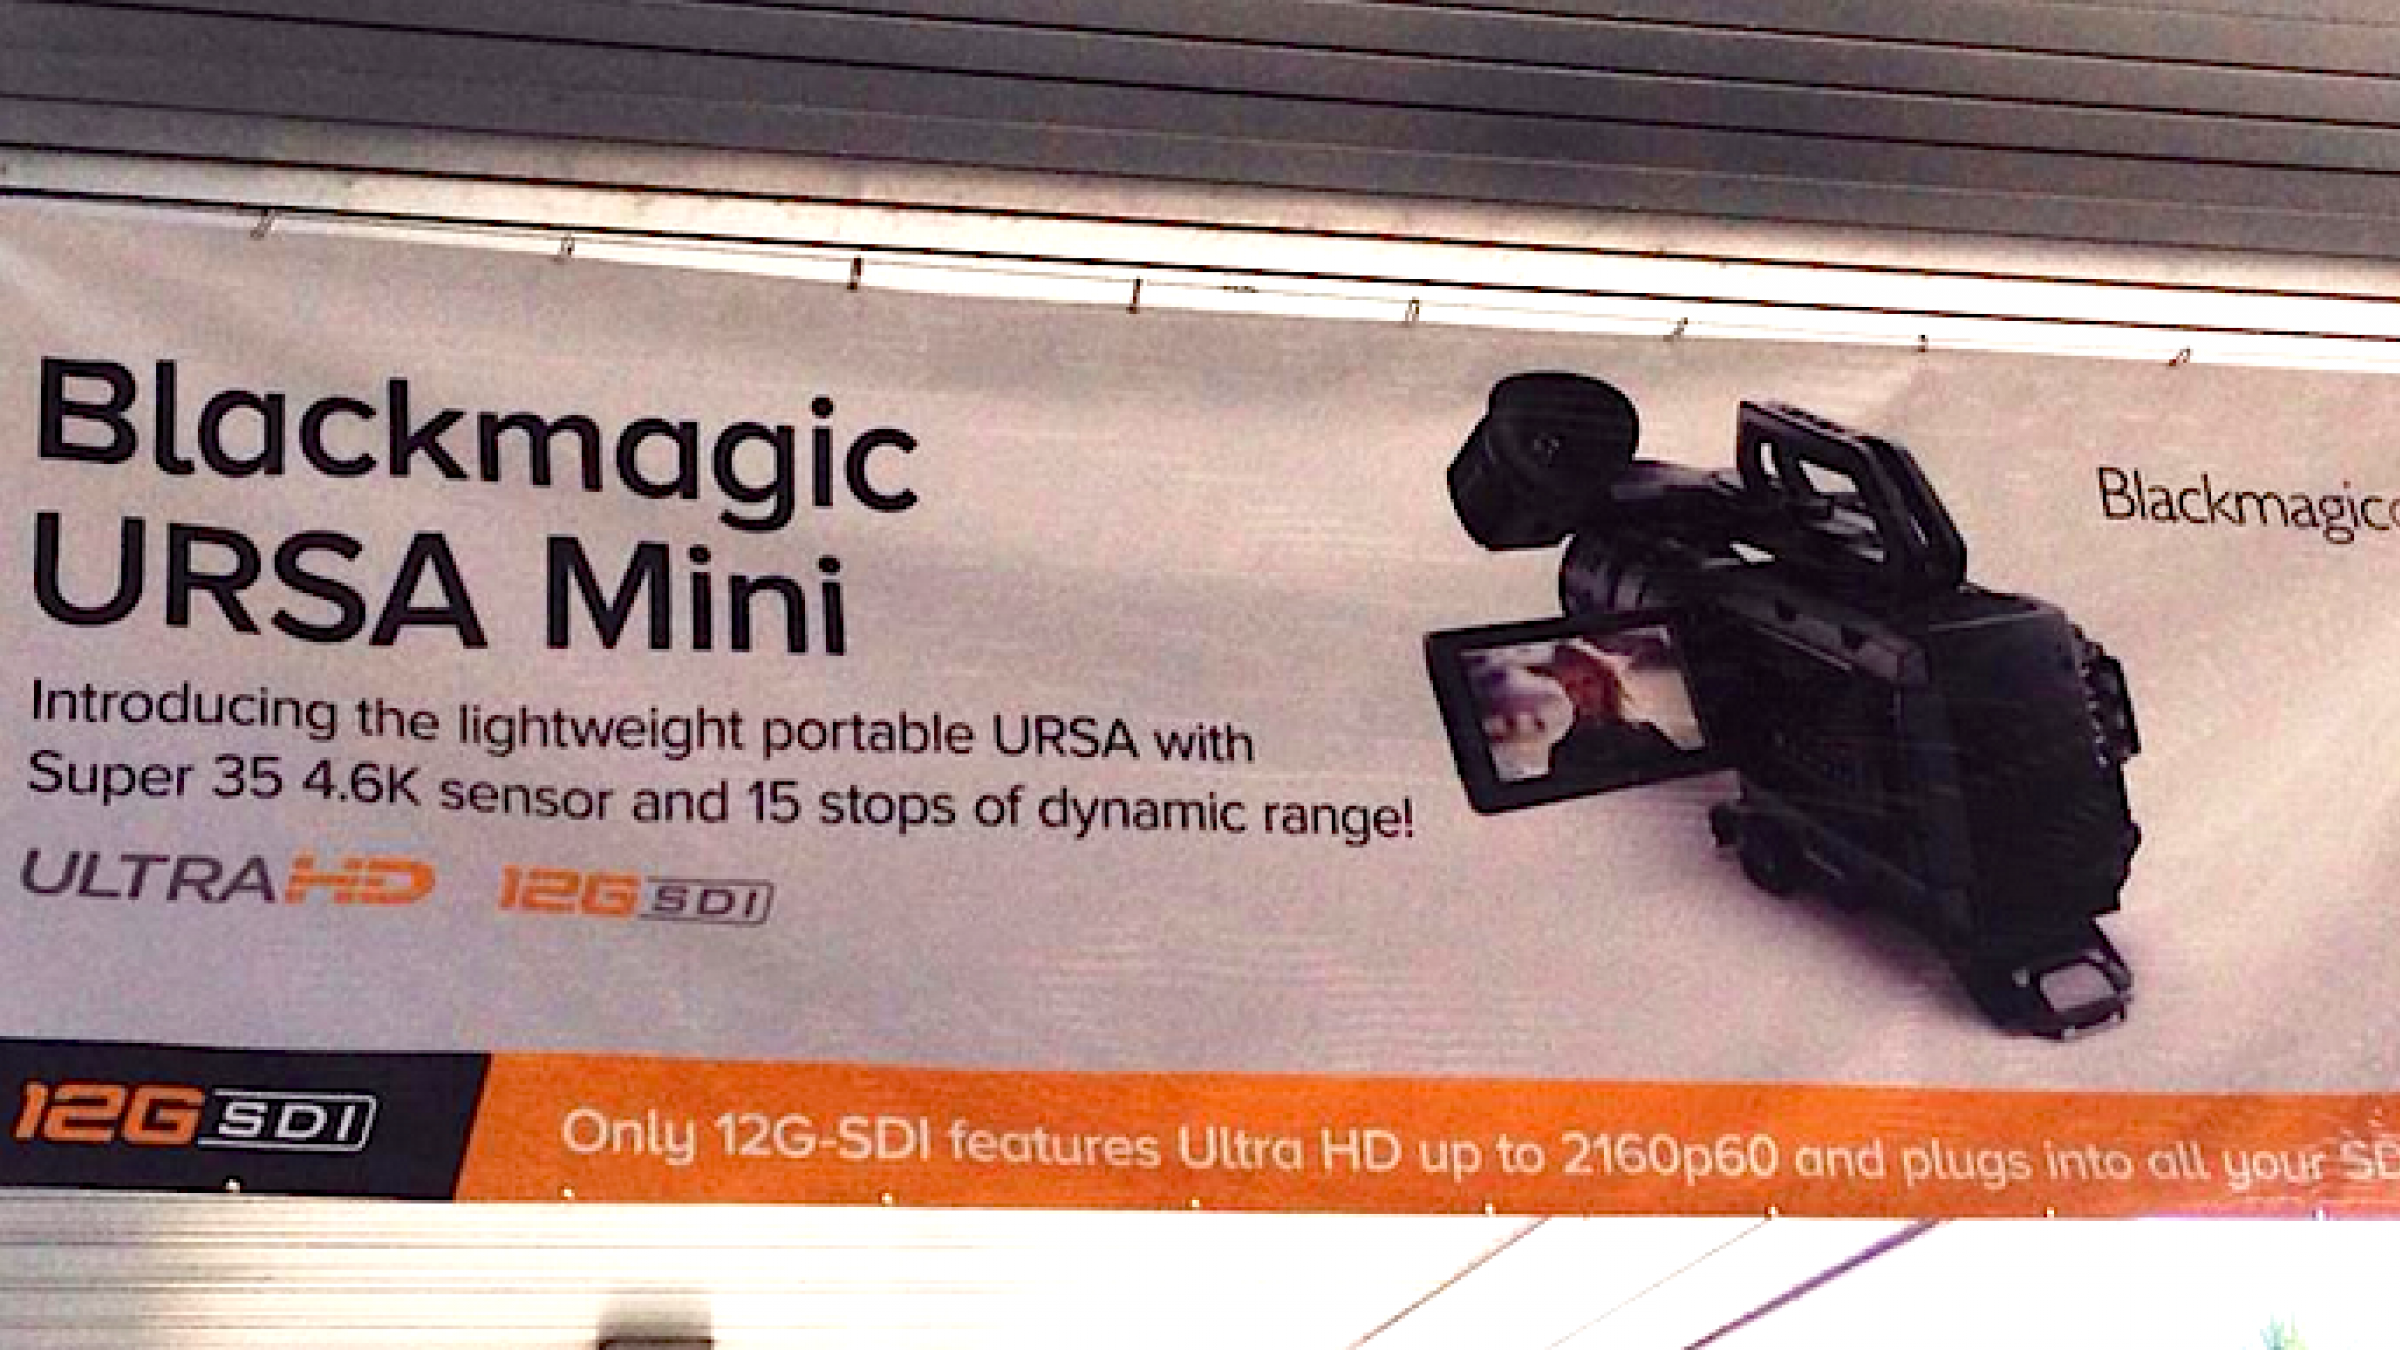 Blackmagic Is About To Announce A 4 6k Ursa Mini With 15 Stops Of Dynamic Range